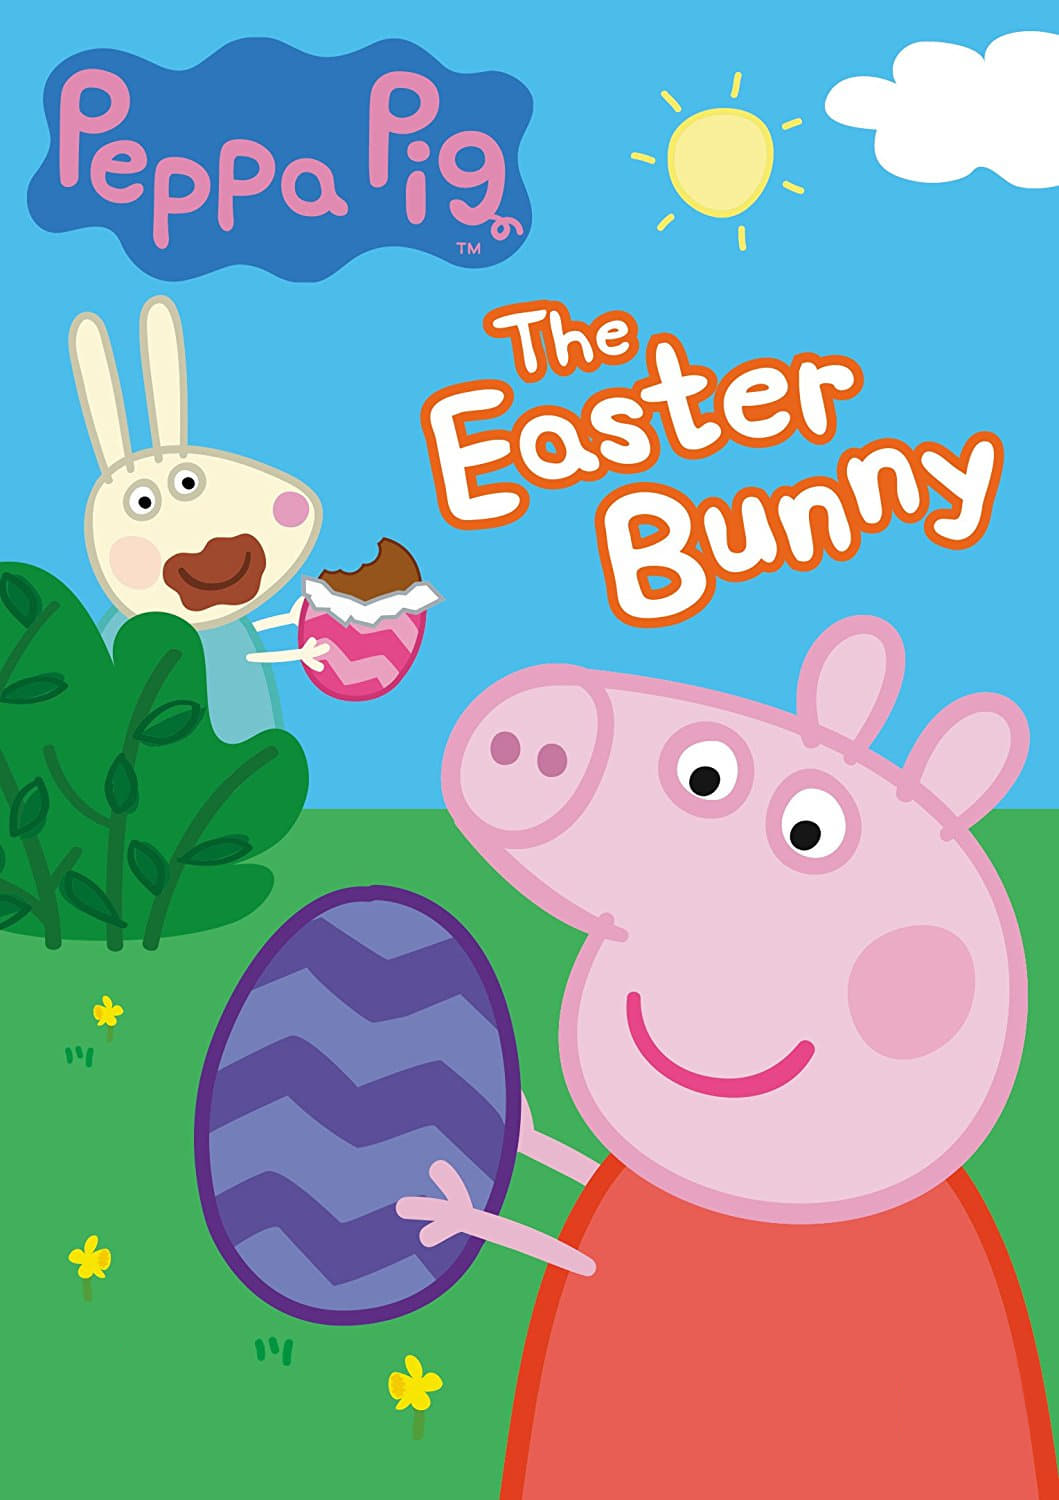 Peppa Pig: The Easter Bunny (2018)